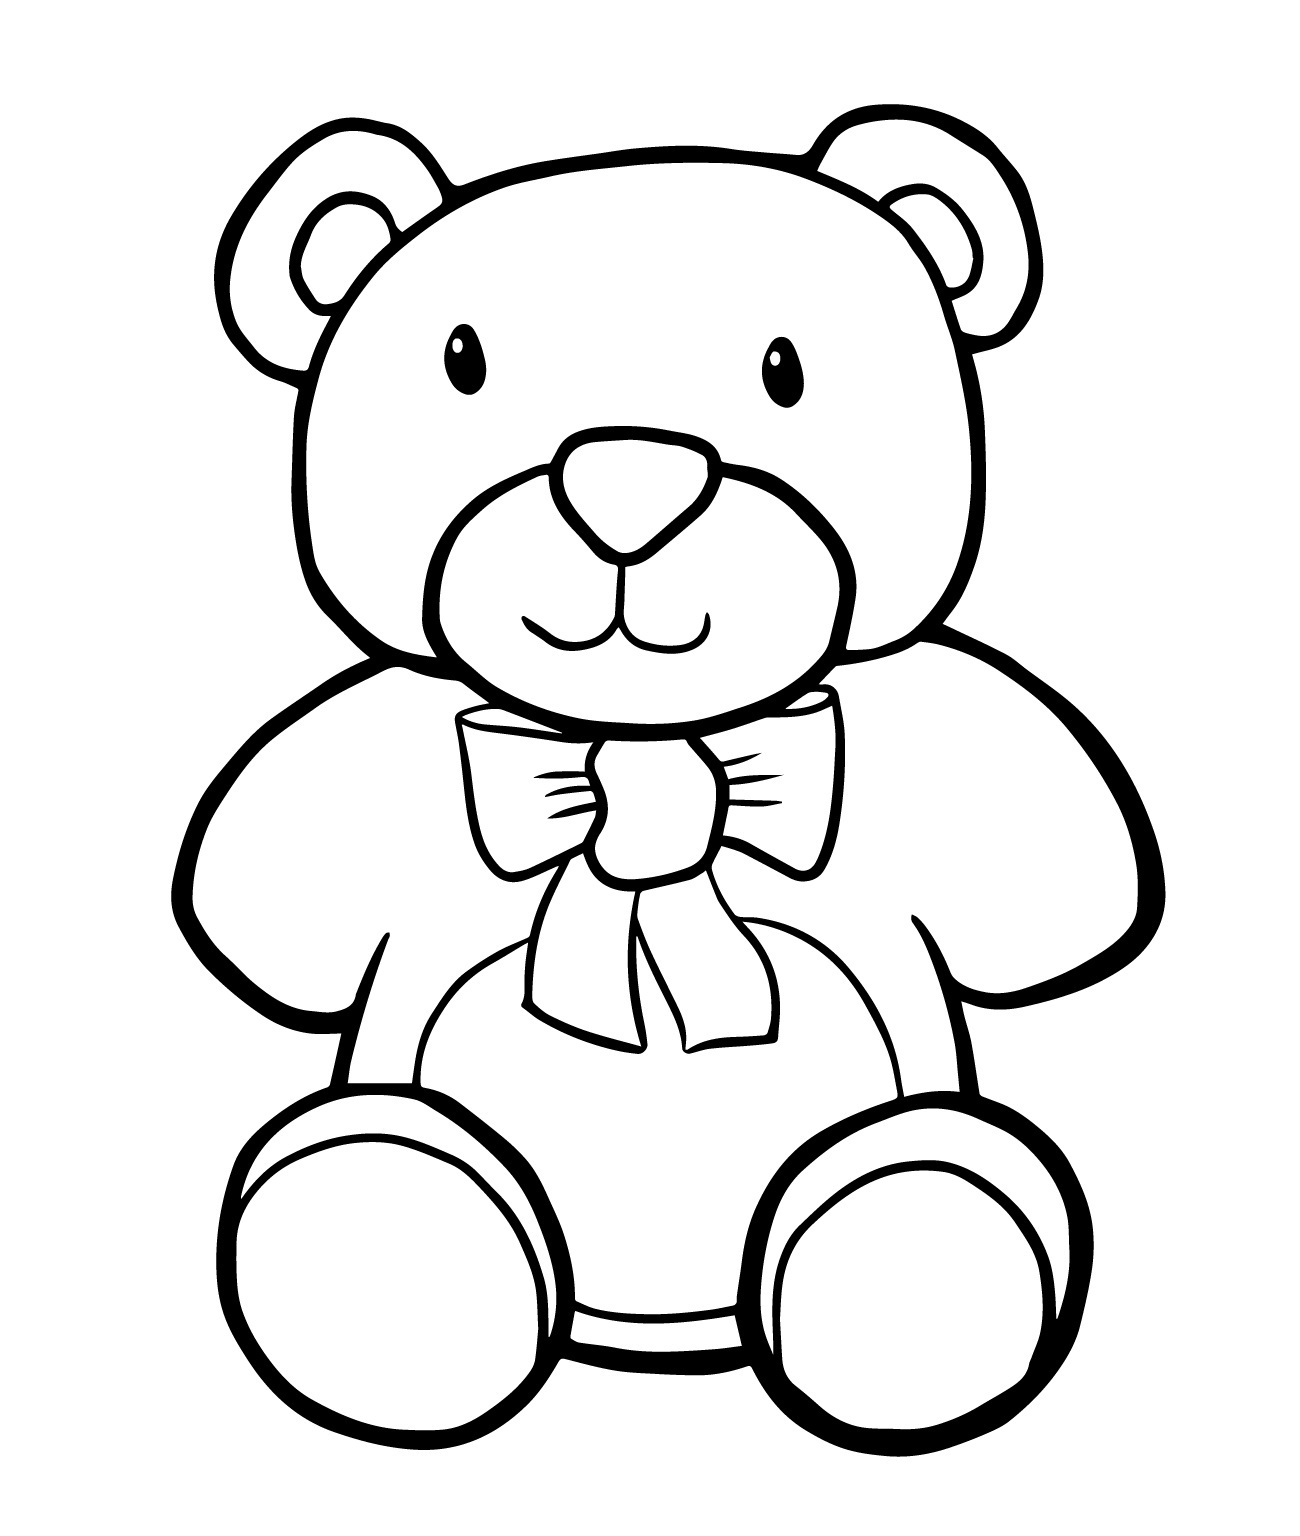 free pictures of teddy bears to colour teddy bears coloring pages download and print teddy bears bears to free pictures teddy colour of